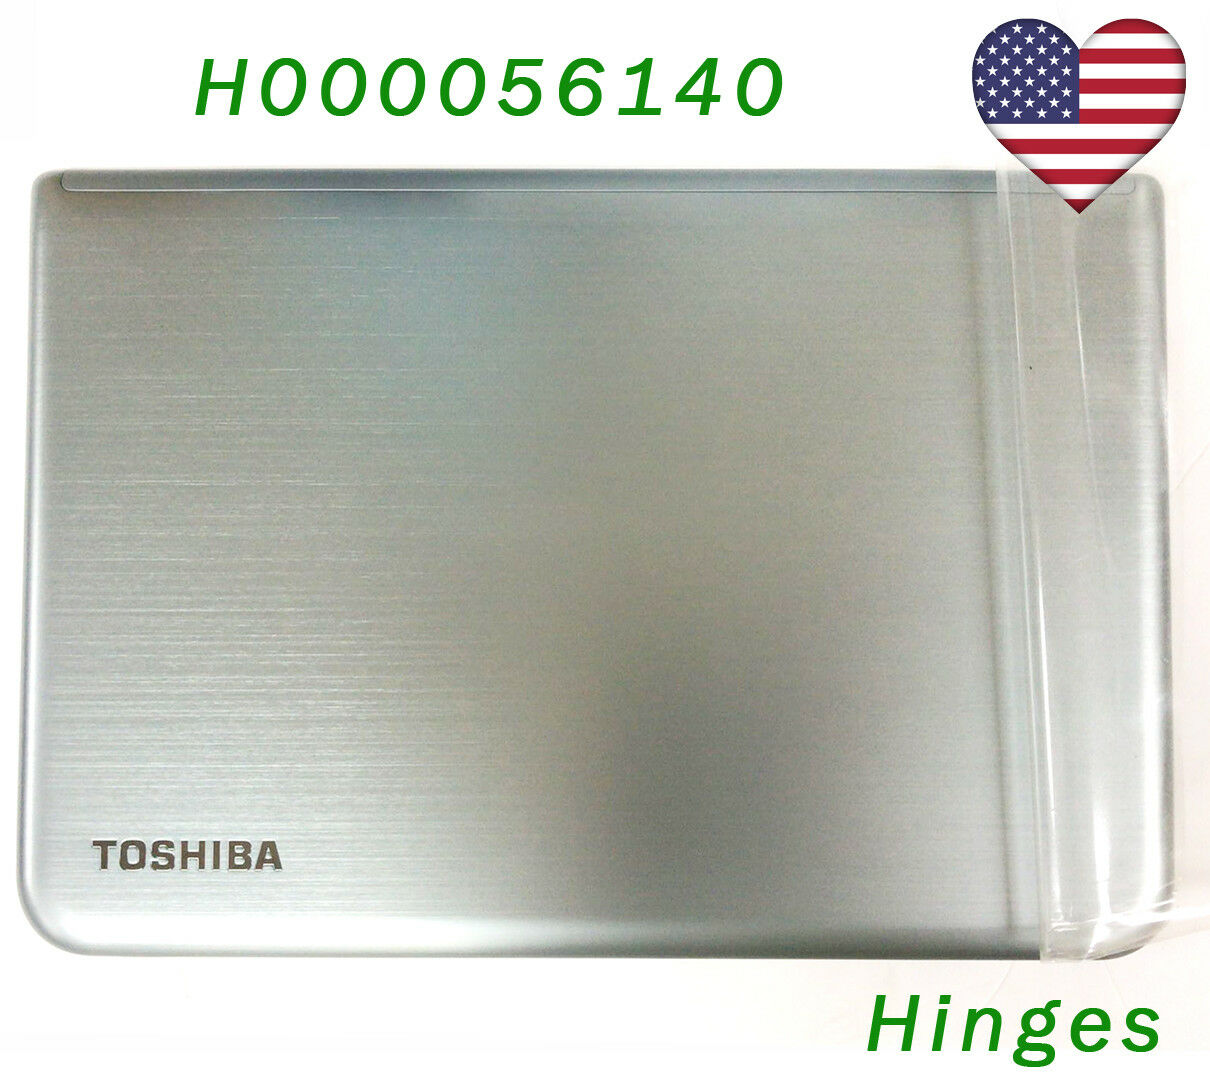 Ori Toshiba Satellite P55 P55T A S55A S50D-A LCD BacK COVER  H000056130